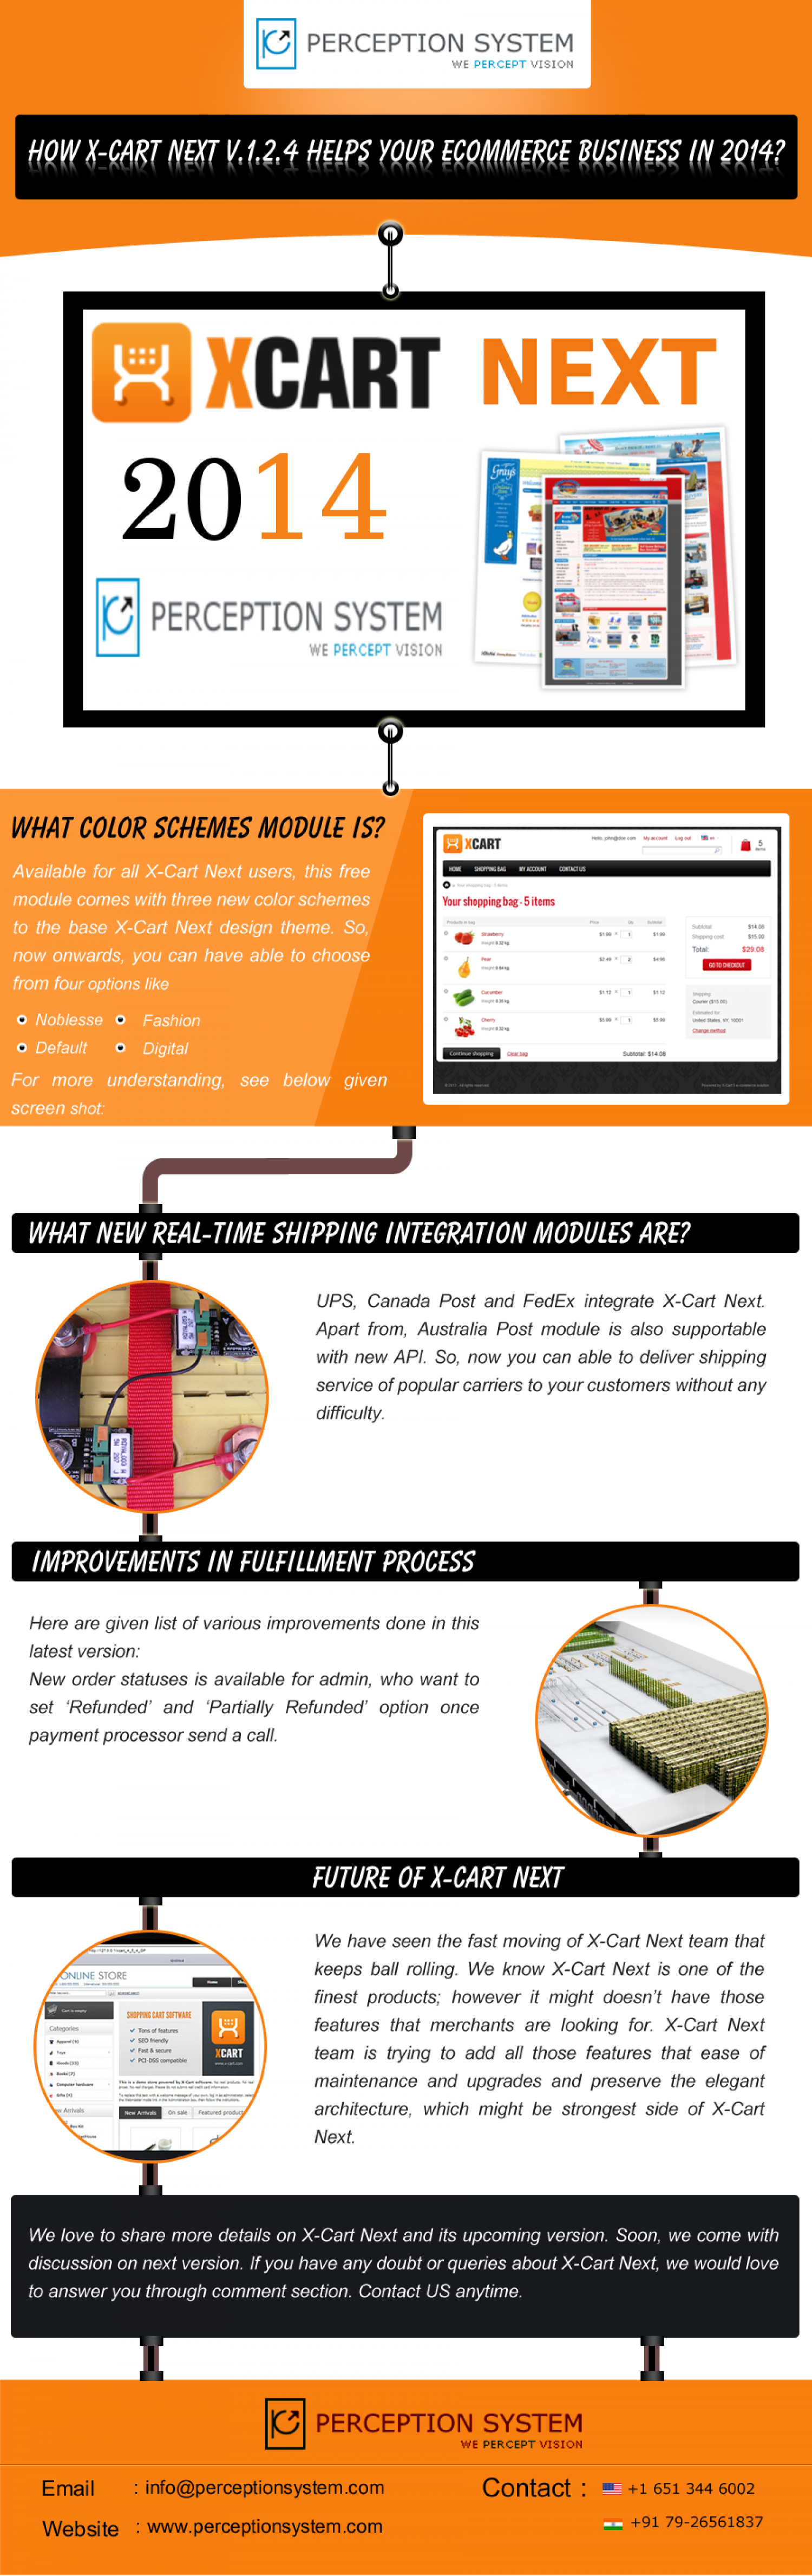 Effects of X-Cart Next in Your eCommerce Business in 2014 Infographic